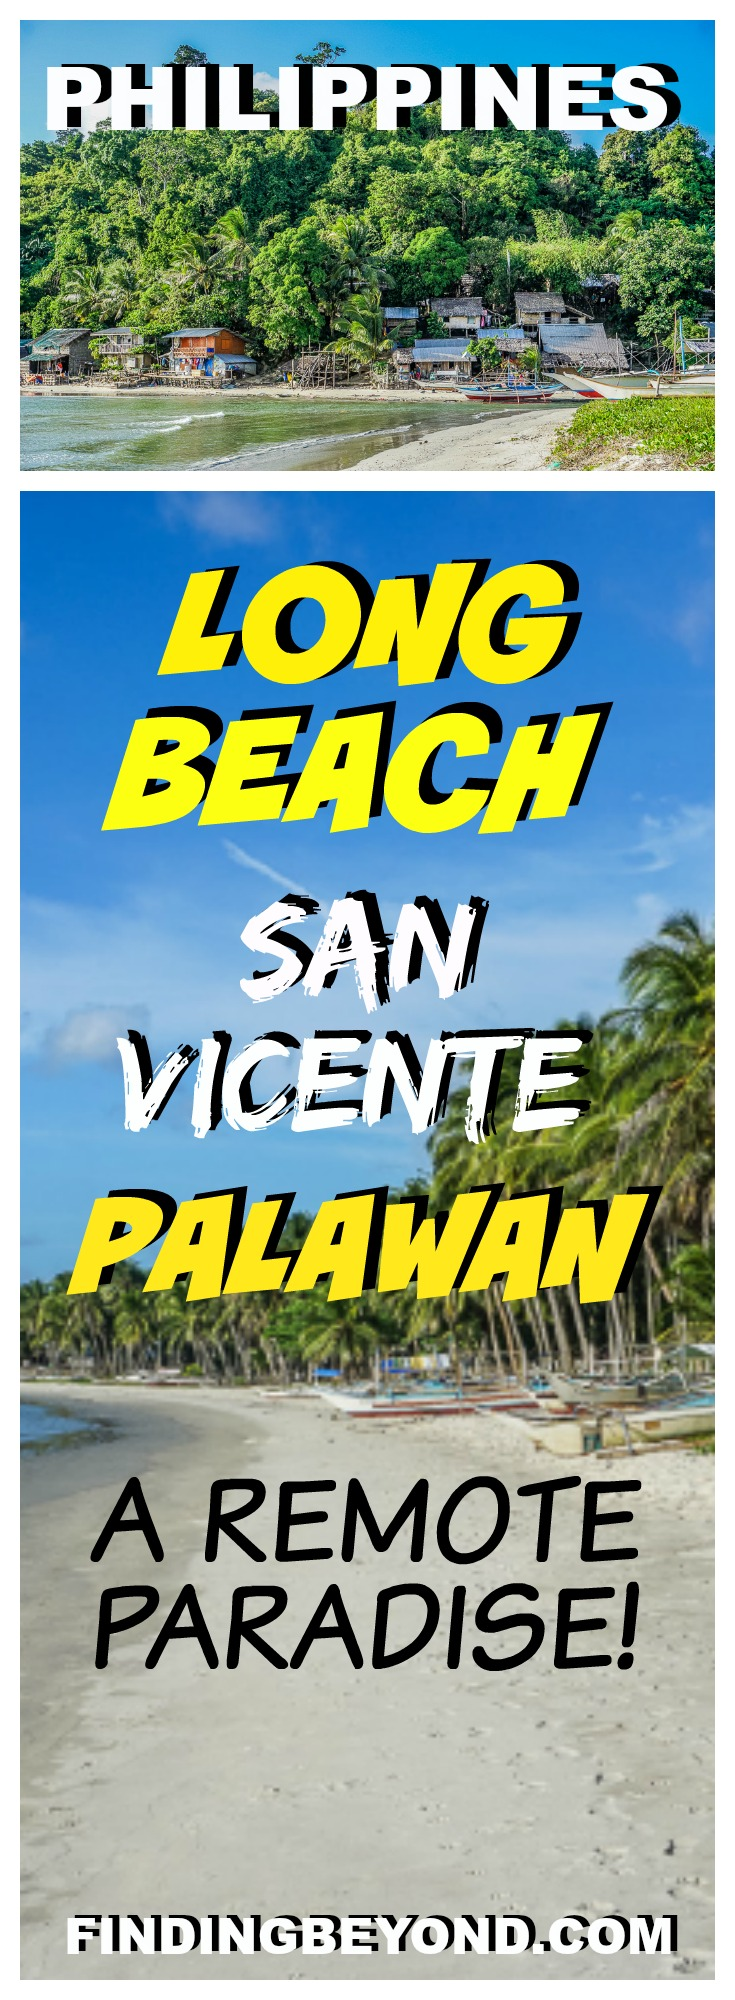 In this post, we quietly reveal a little known remote paradise, touted as the longest white sand beach in the Philippines - Long Beach San Vicente Palawan.